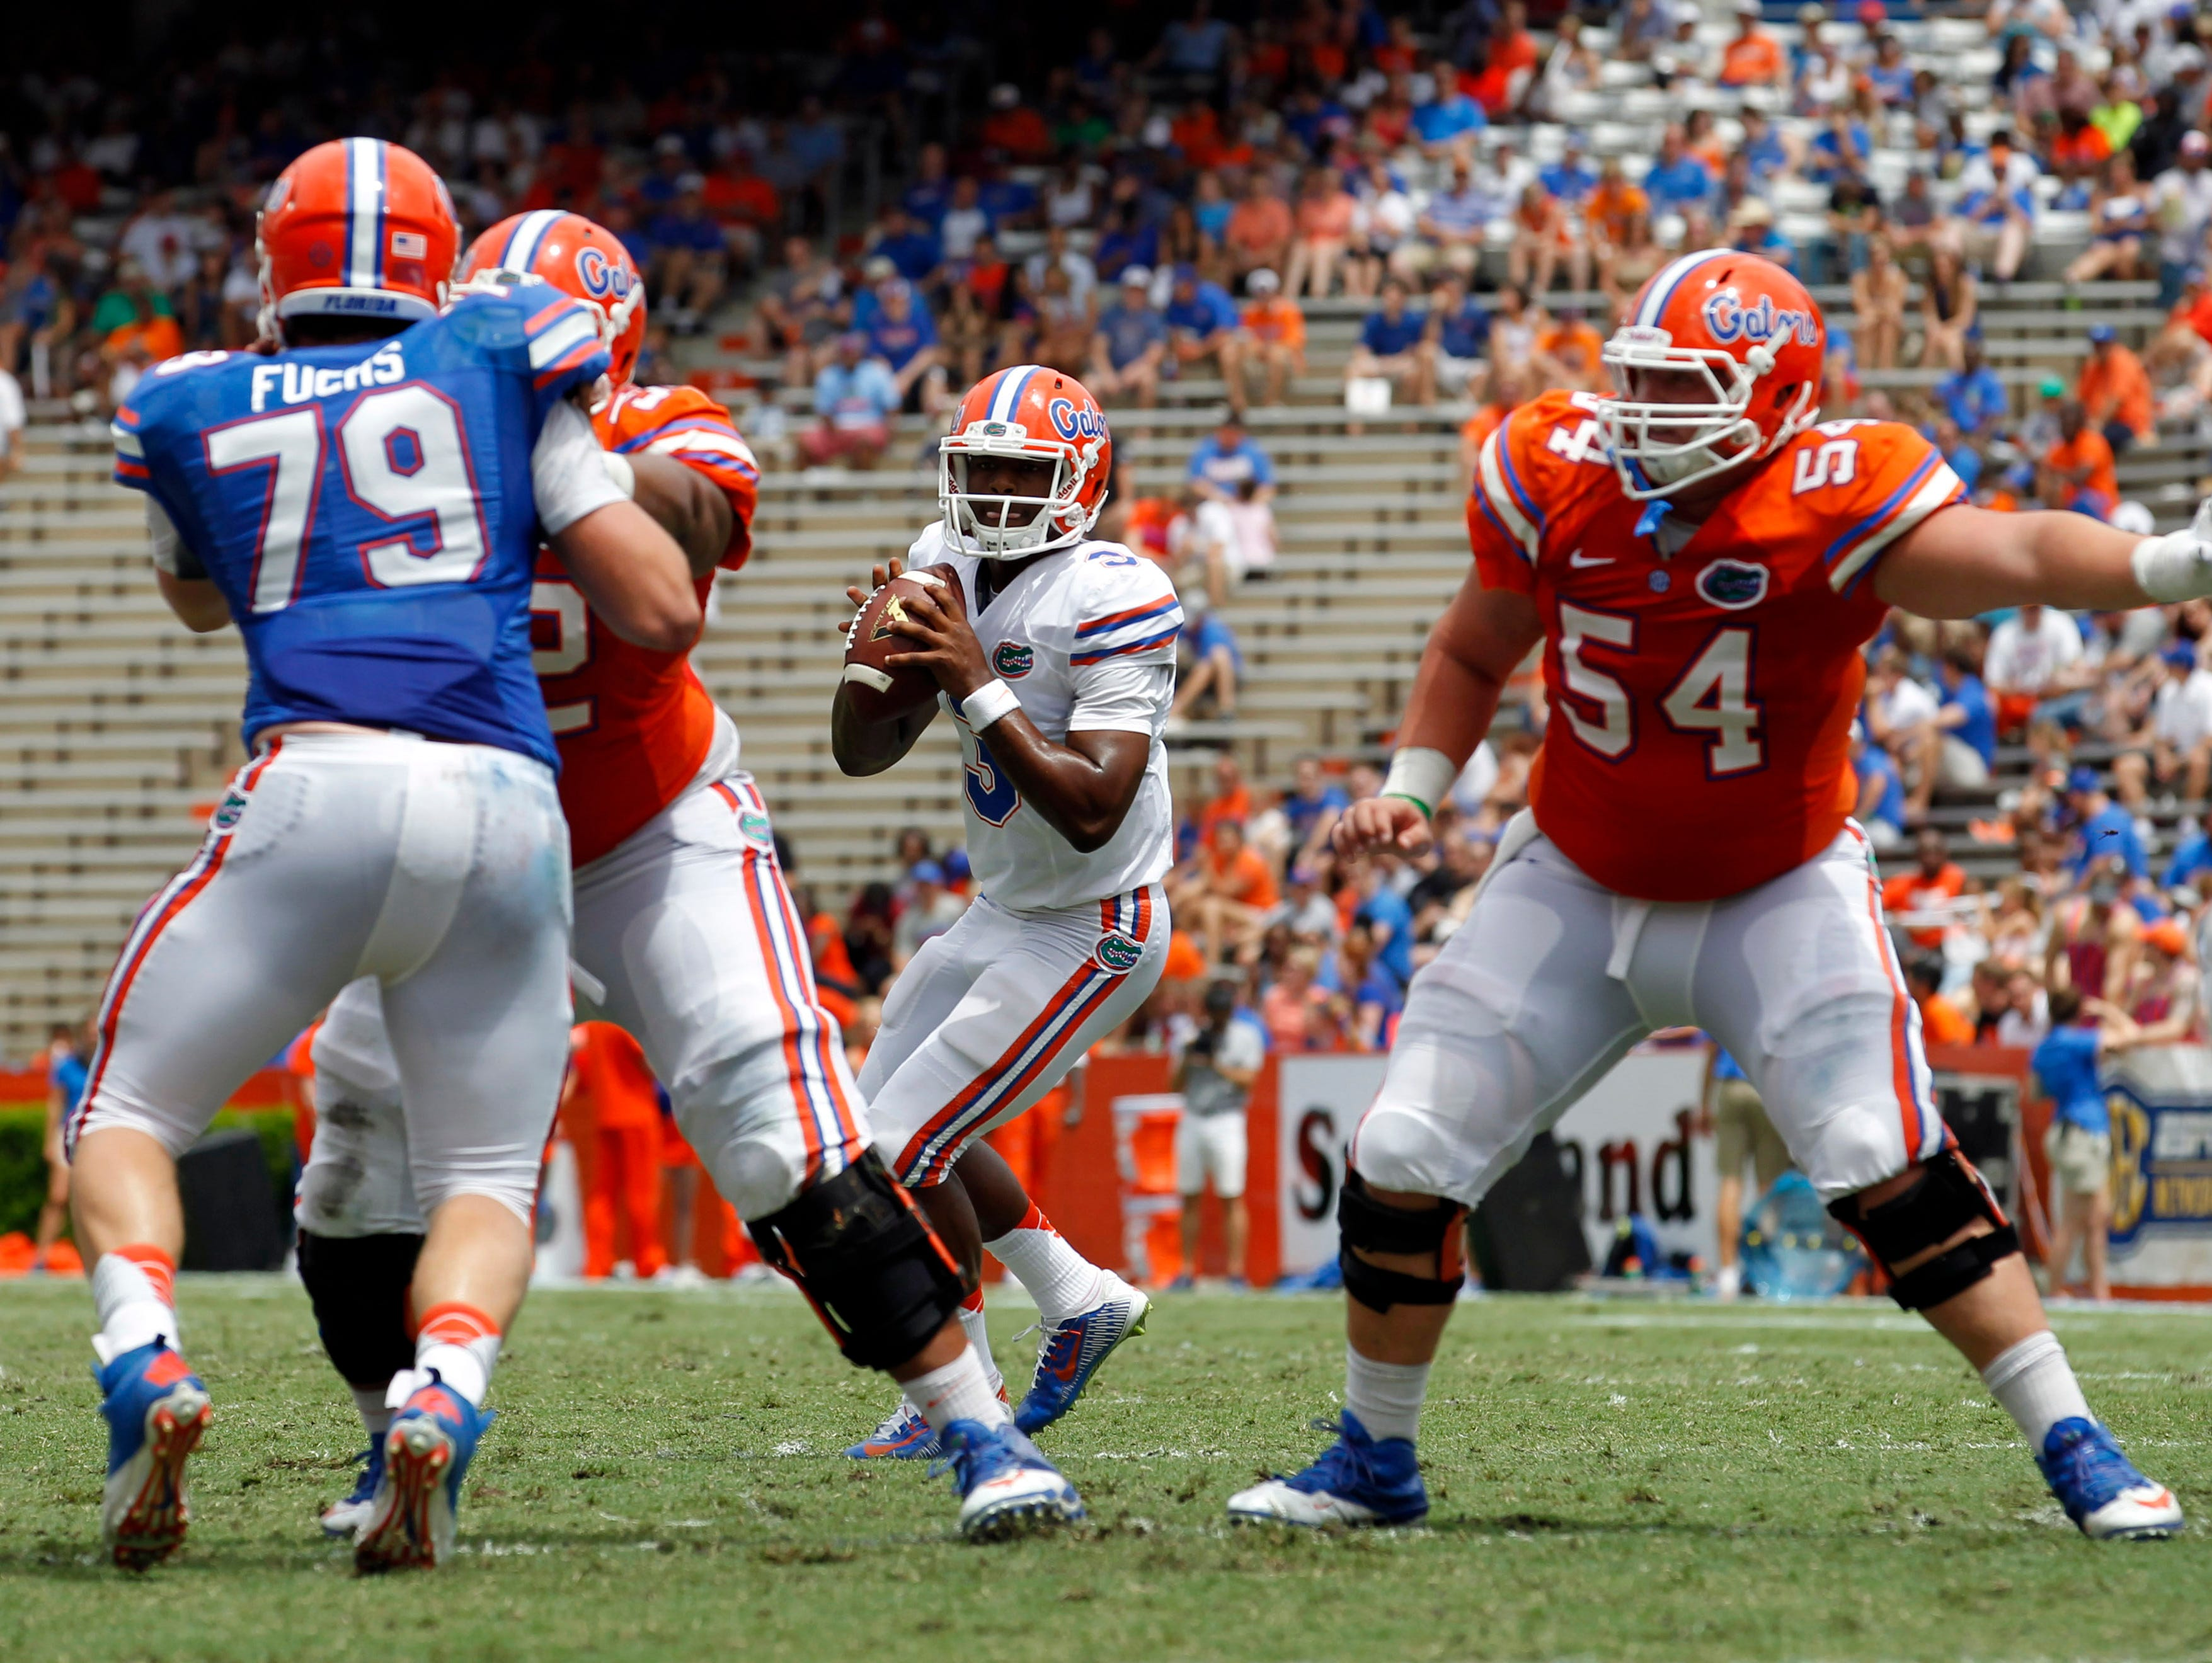 Florida Gators quarterback Treon Harris (3) is in the running to be the team's starter this fall.